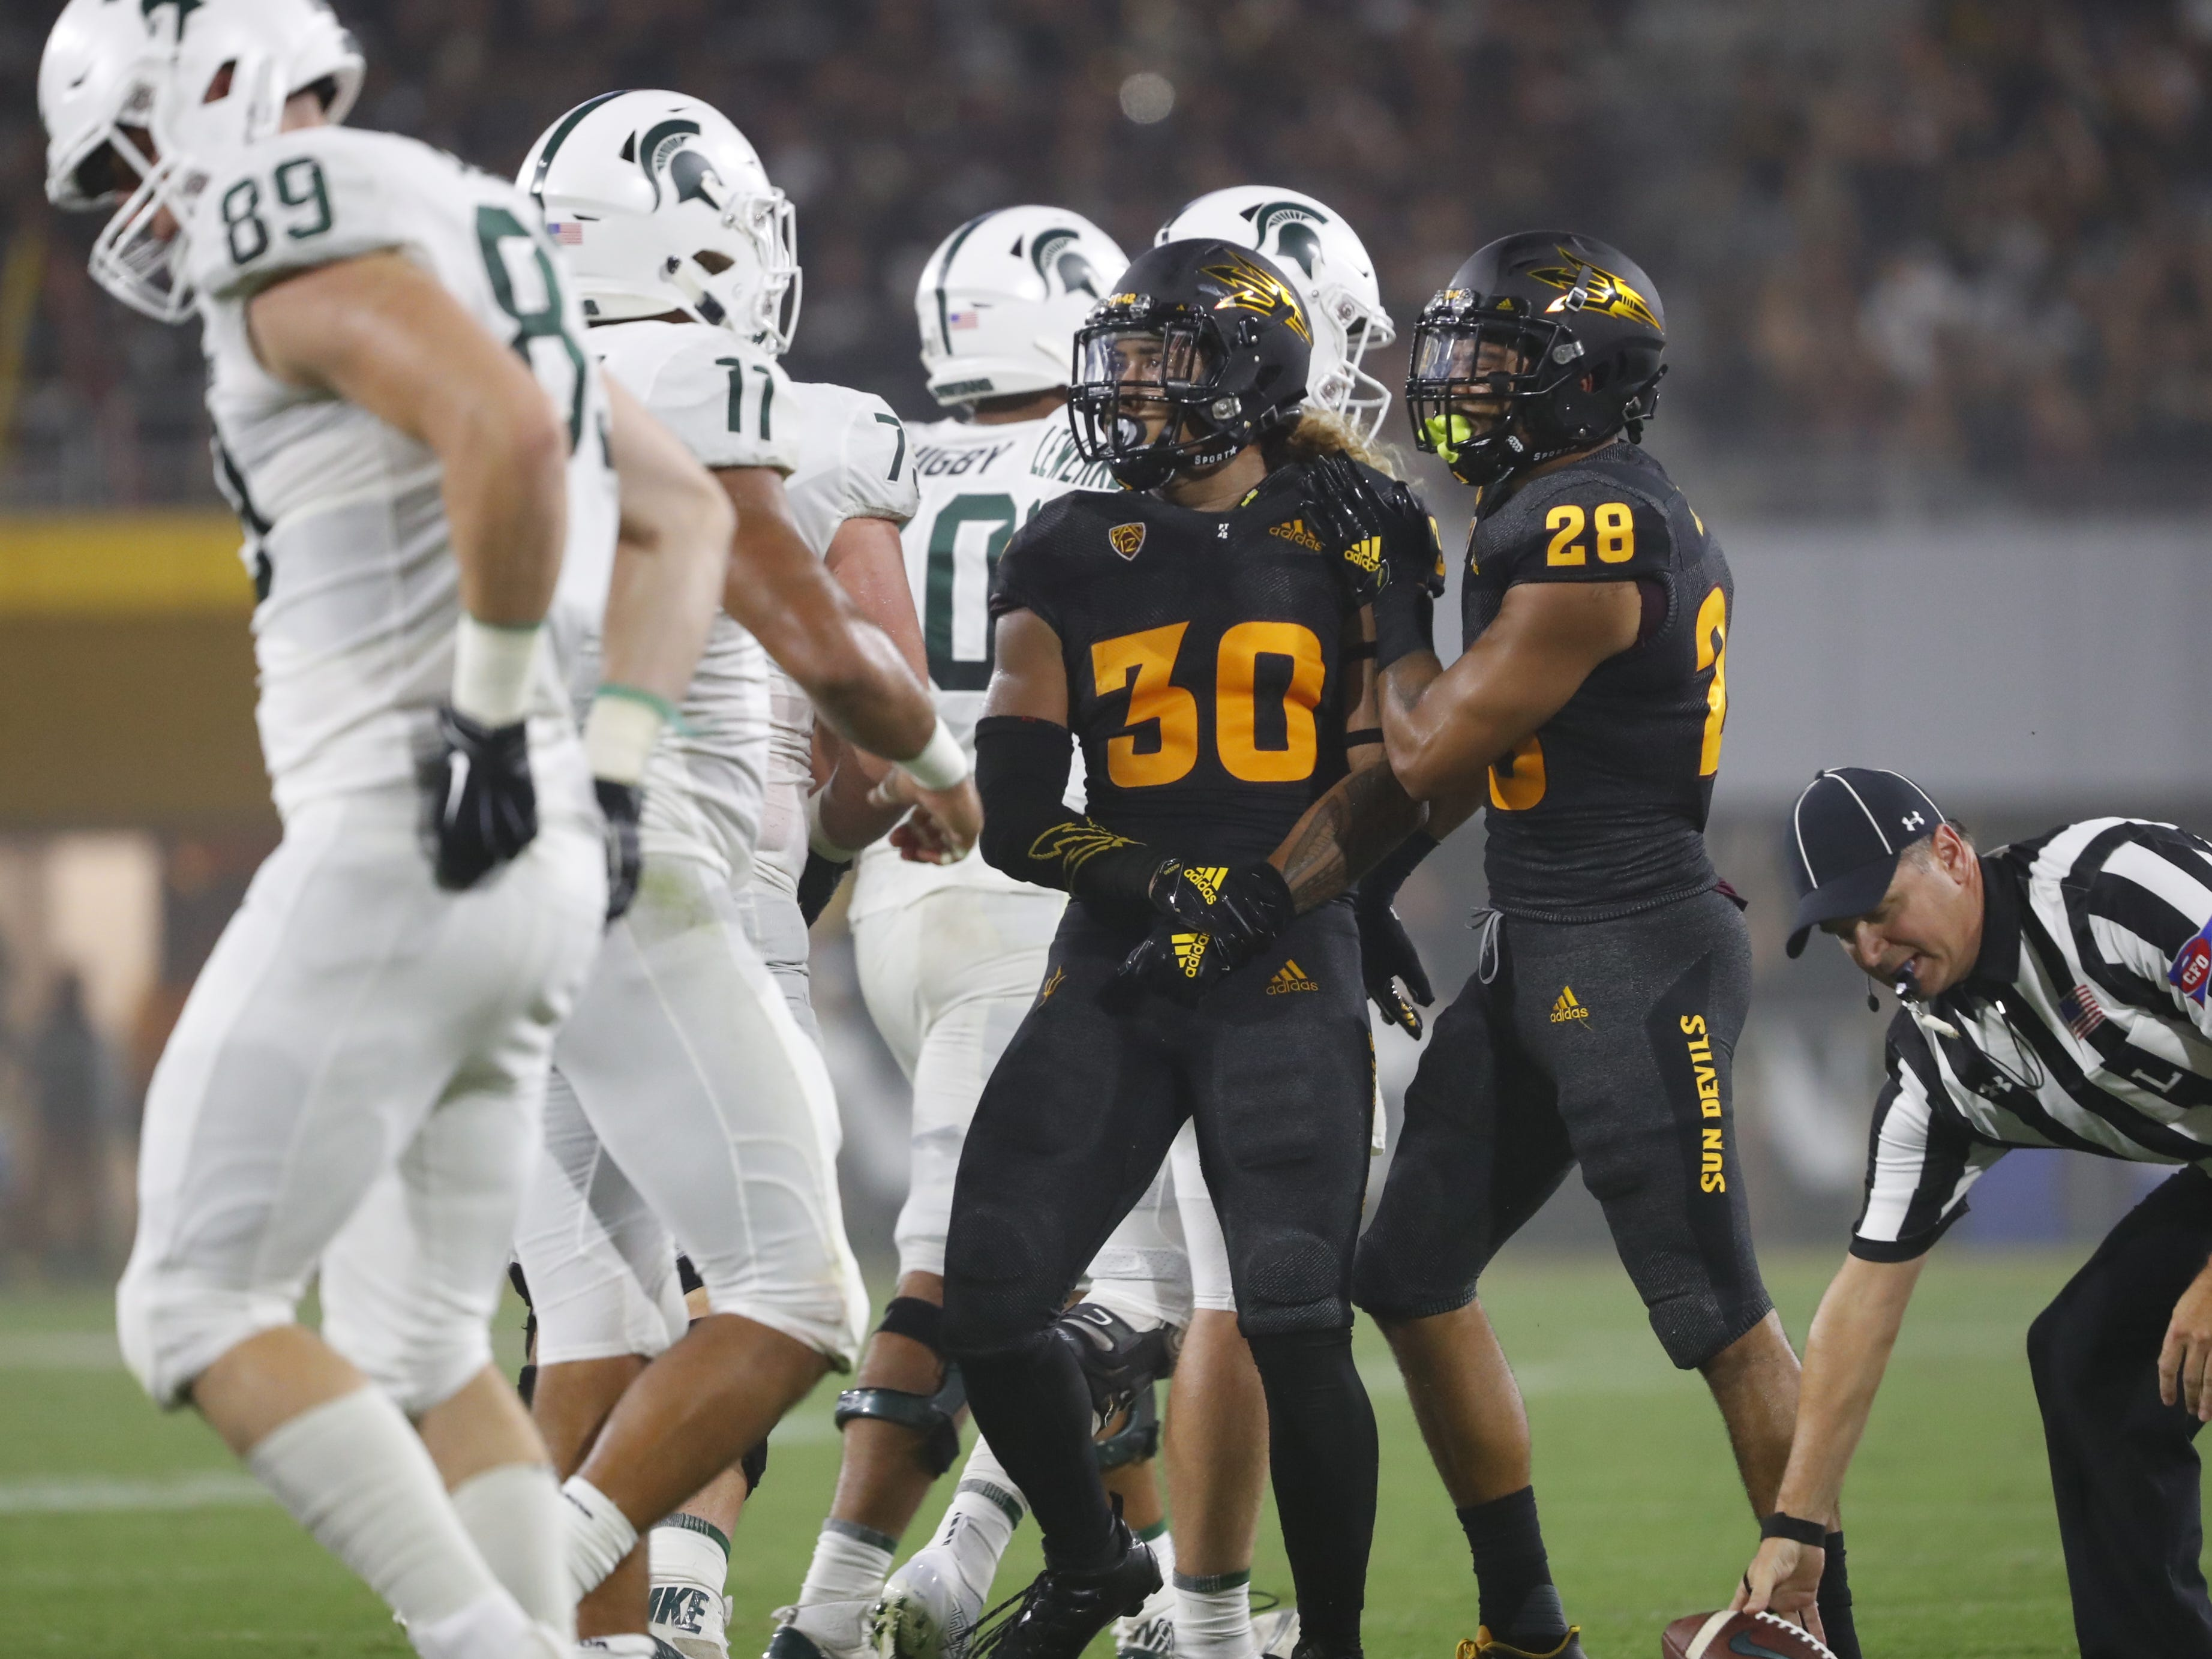 Arizona State Sun Devils defensive back Demonte King (28) celebrates with Arizona State Sun Devils defensive back Dasmond Tautalatasi (30) after Tautalatasi made an interception in the end zone during the second quarter at Sun Devil Stadium in Tempe, Ariz. on Sept. 8, 2018.